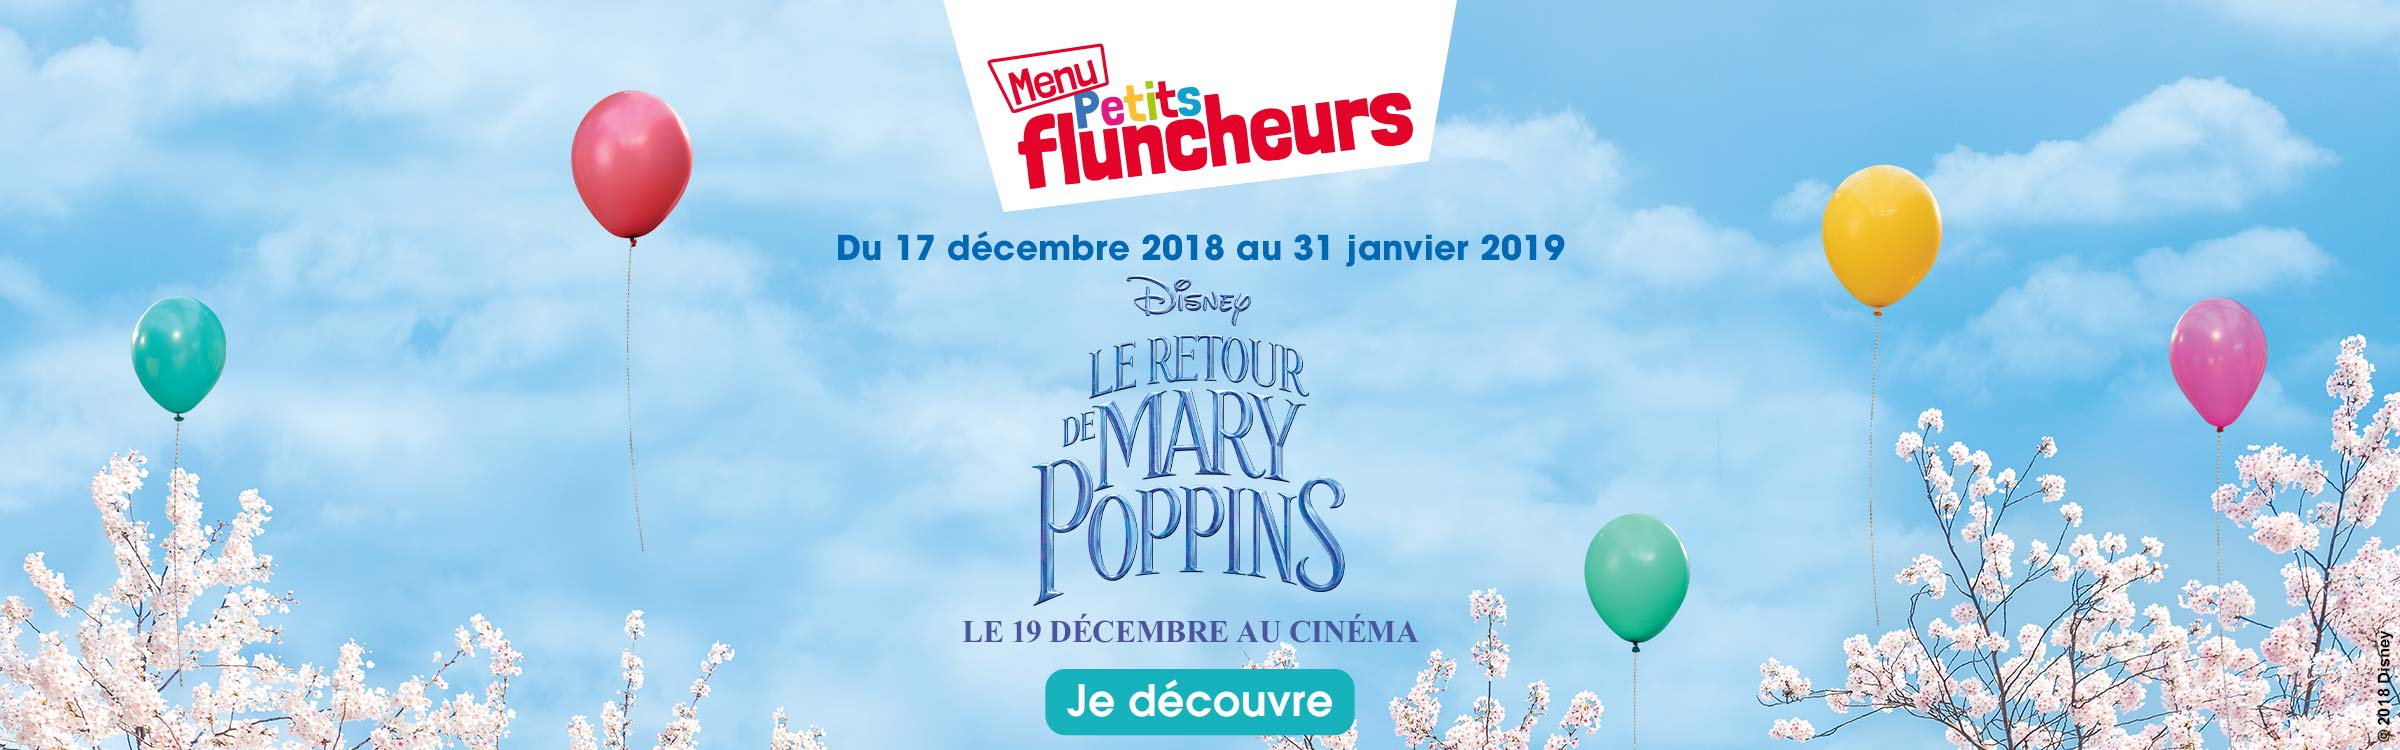 mary poppins cadeau flunch